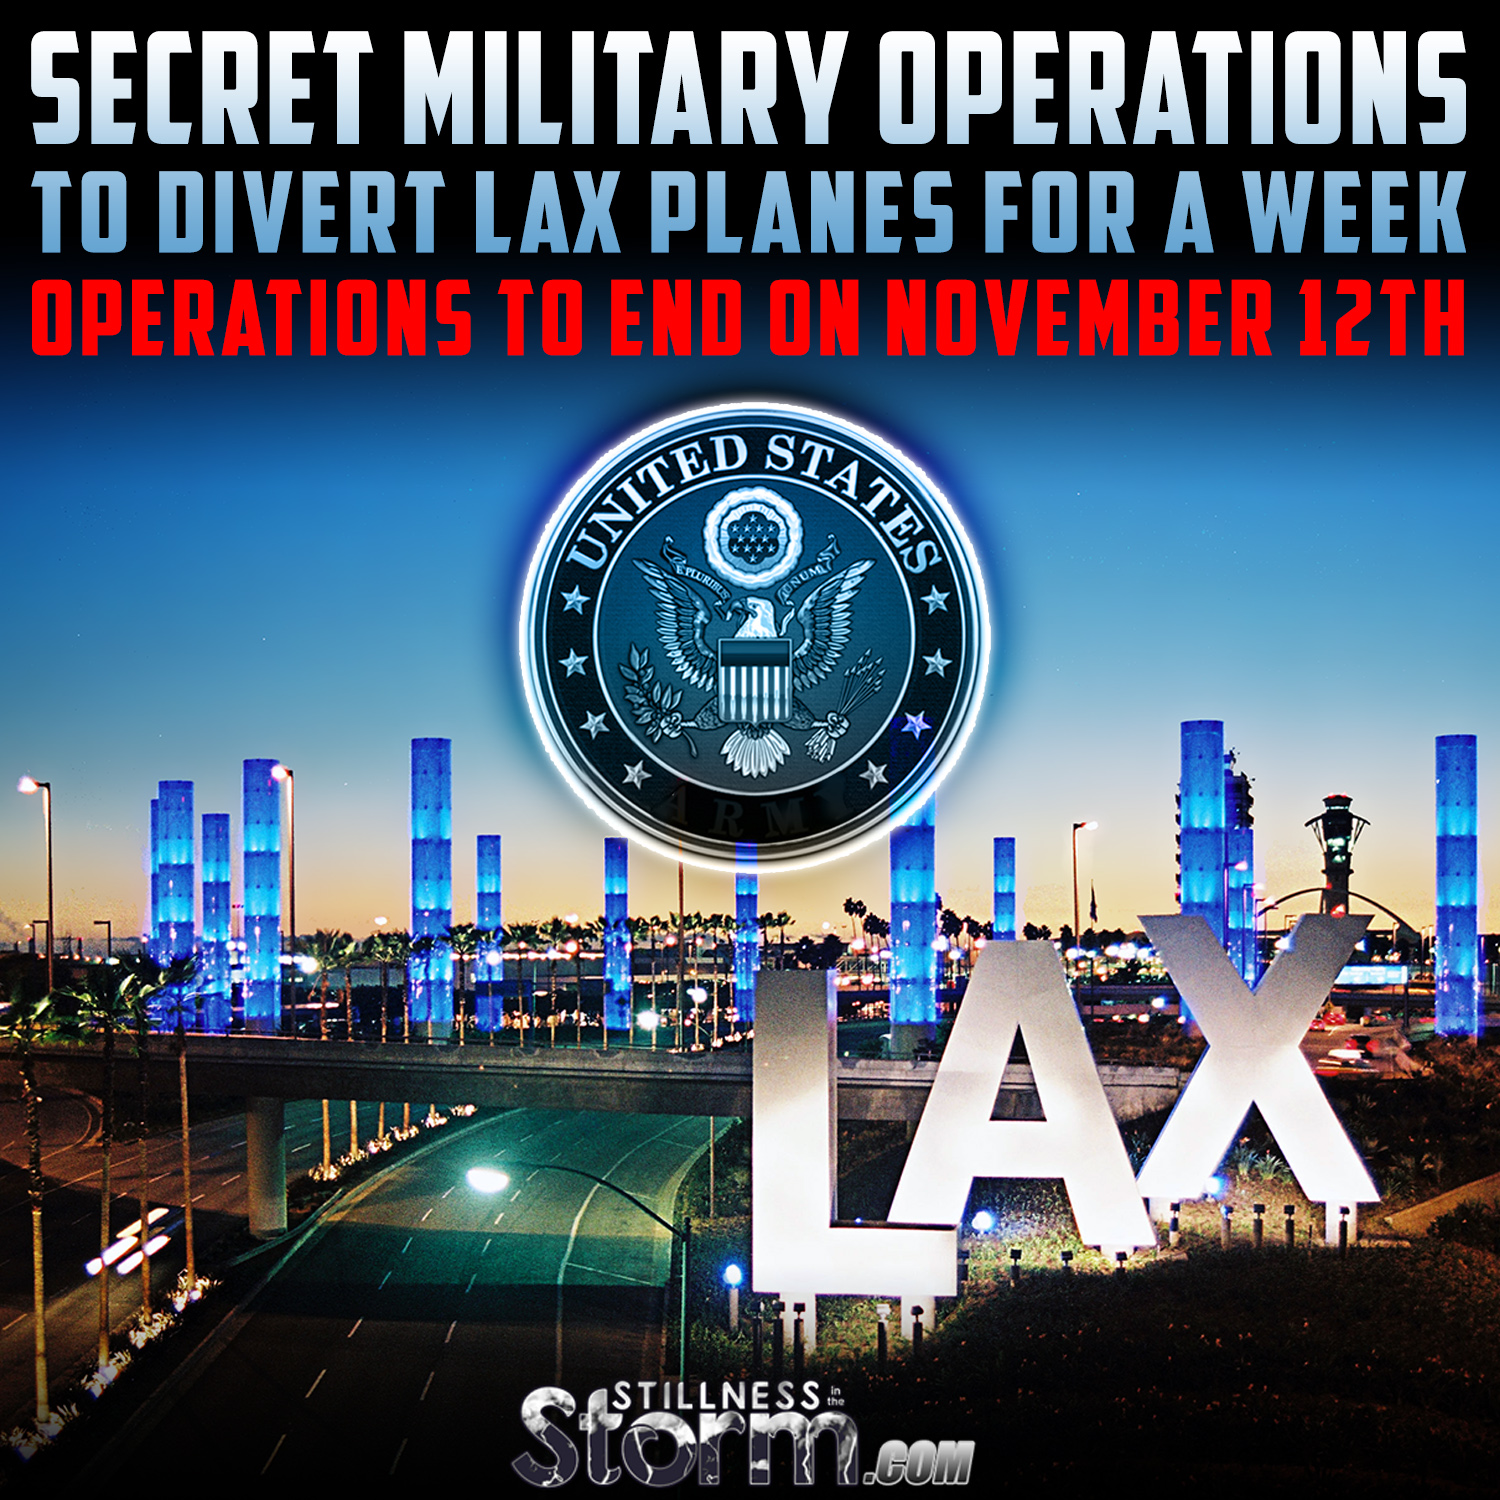 Tuesday, November 10, 2015 Secret Military Operations to Divert LAX